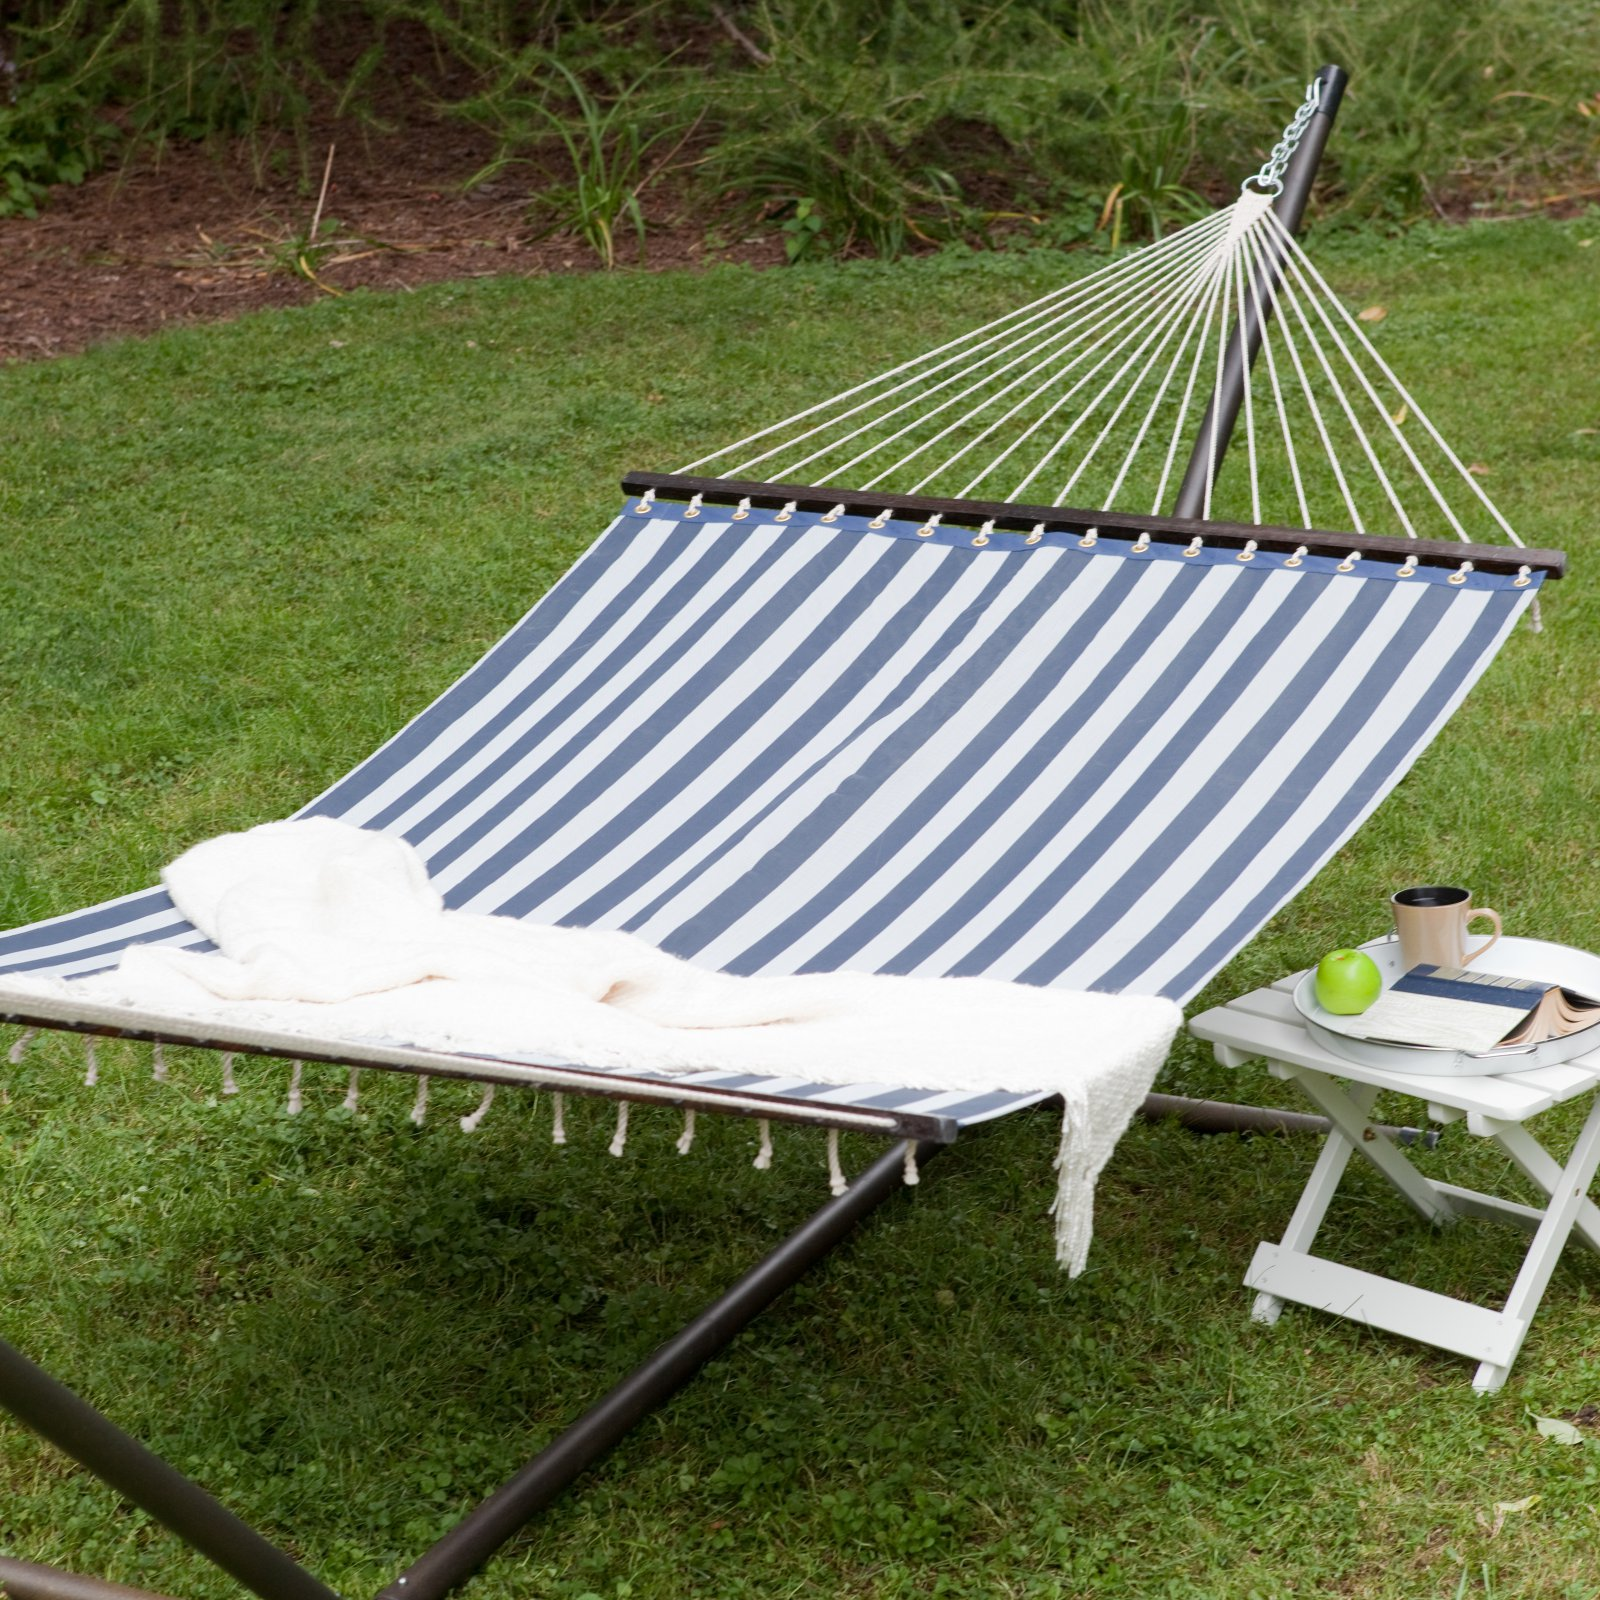 Coral Coast 13 ft. Quick Dry Poolside Navy Stripes Hammock with Steel Stand